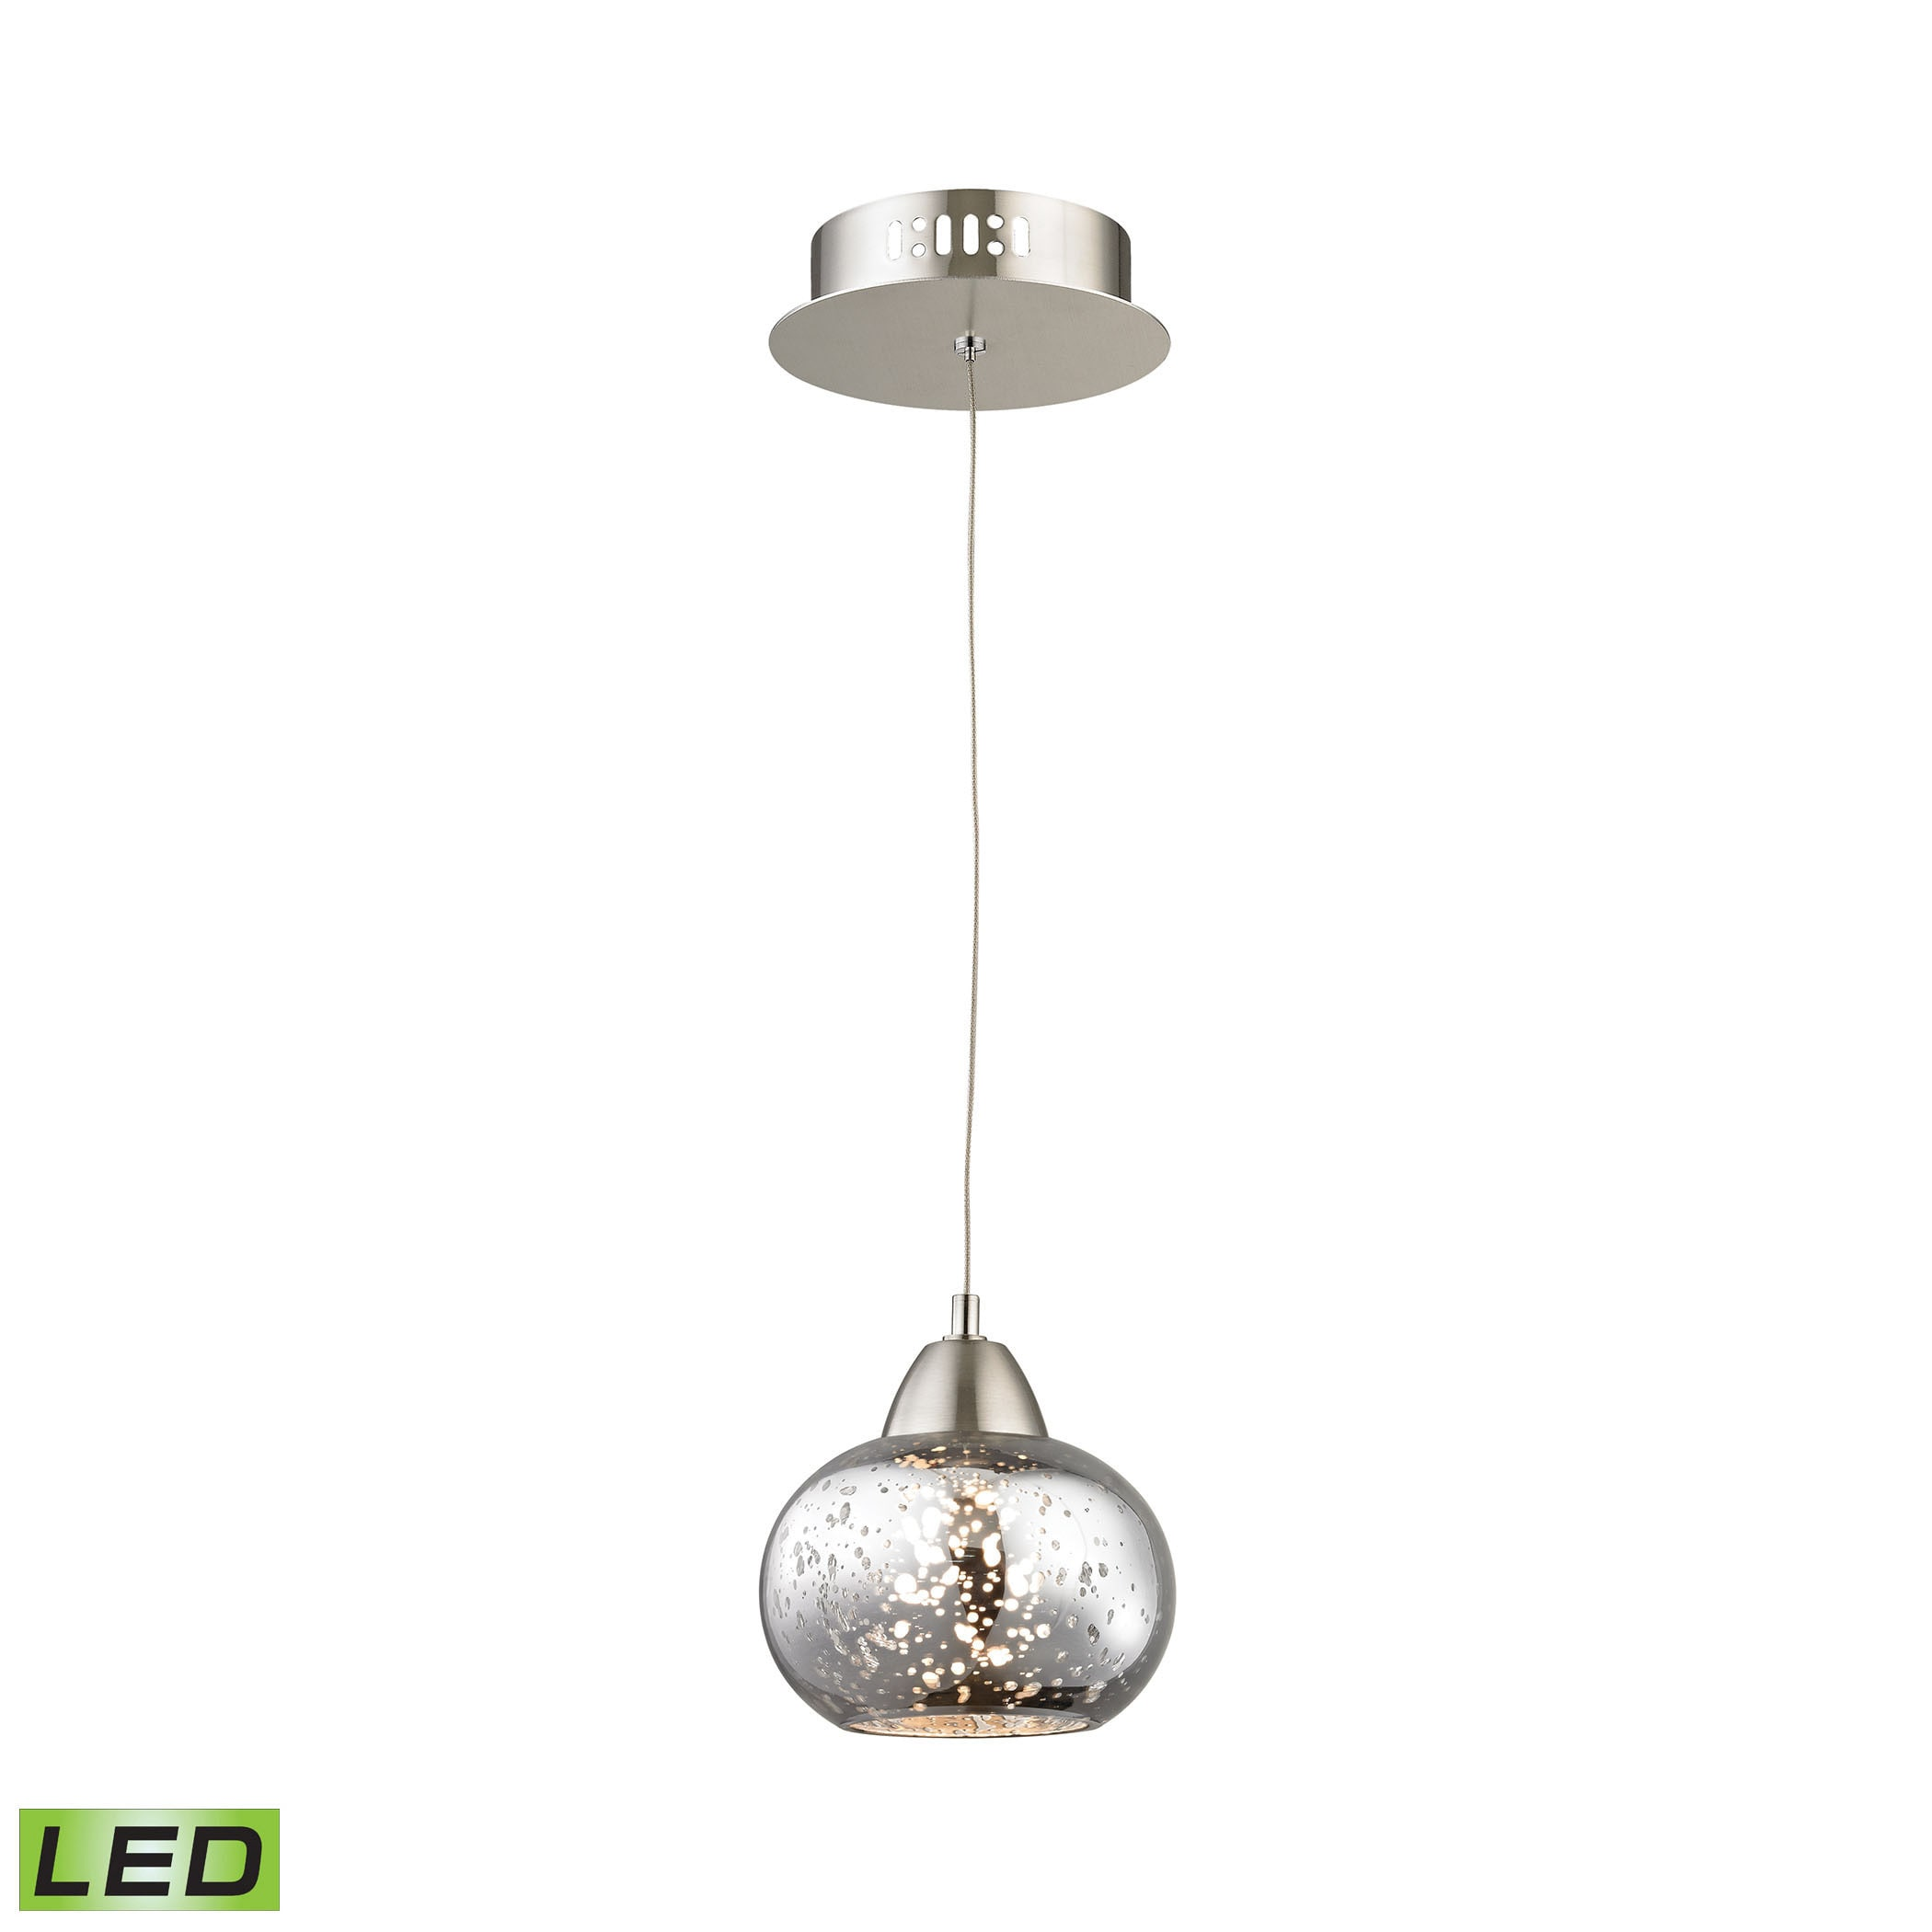 led pendant pharos brushed light in chrome